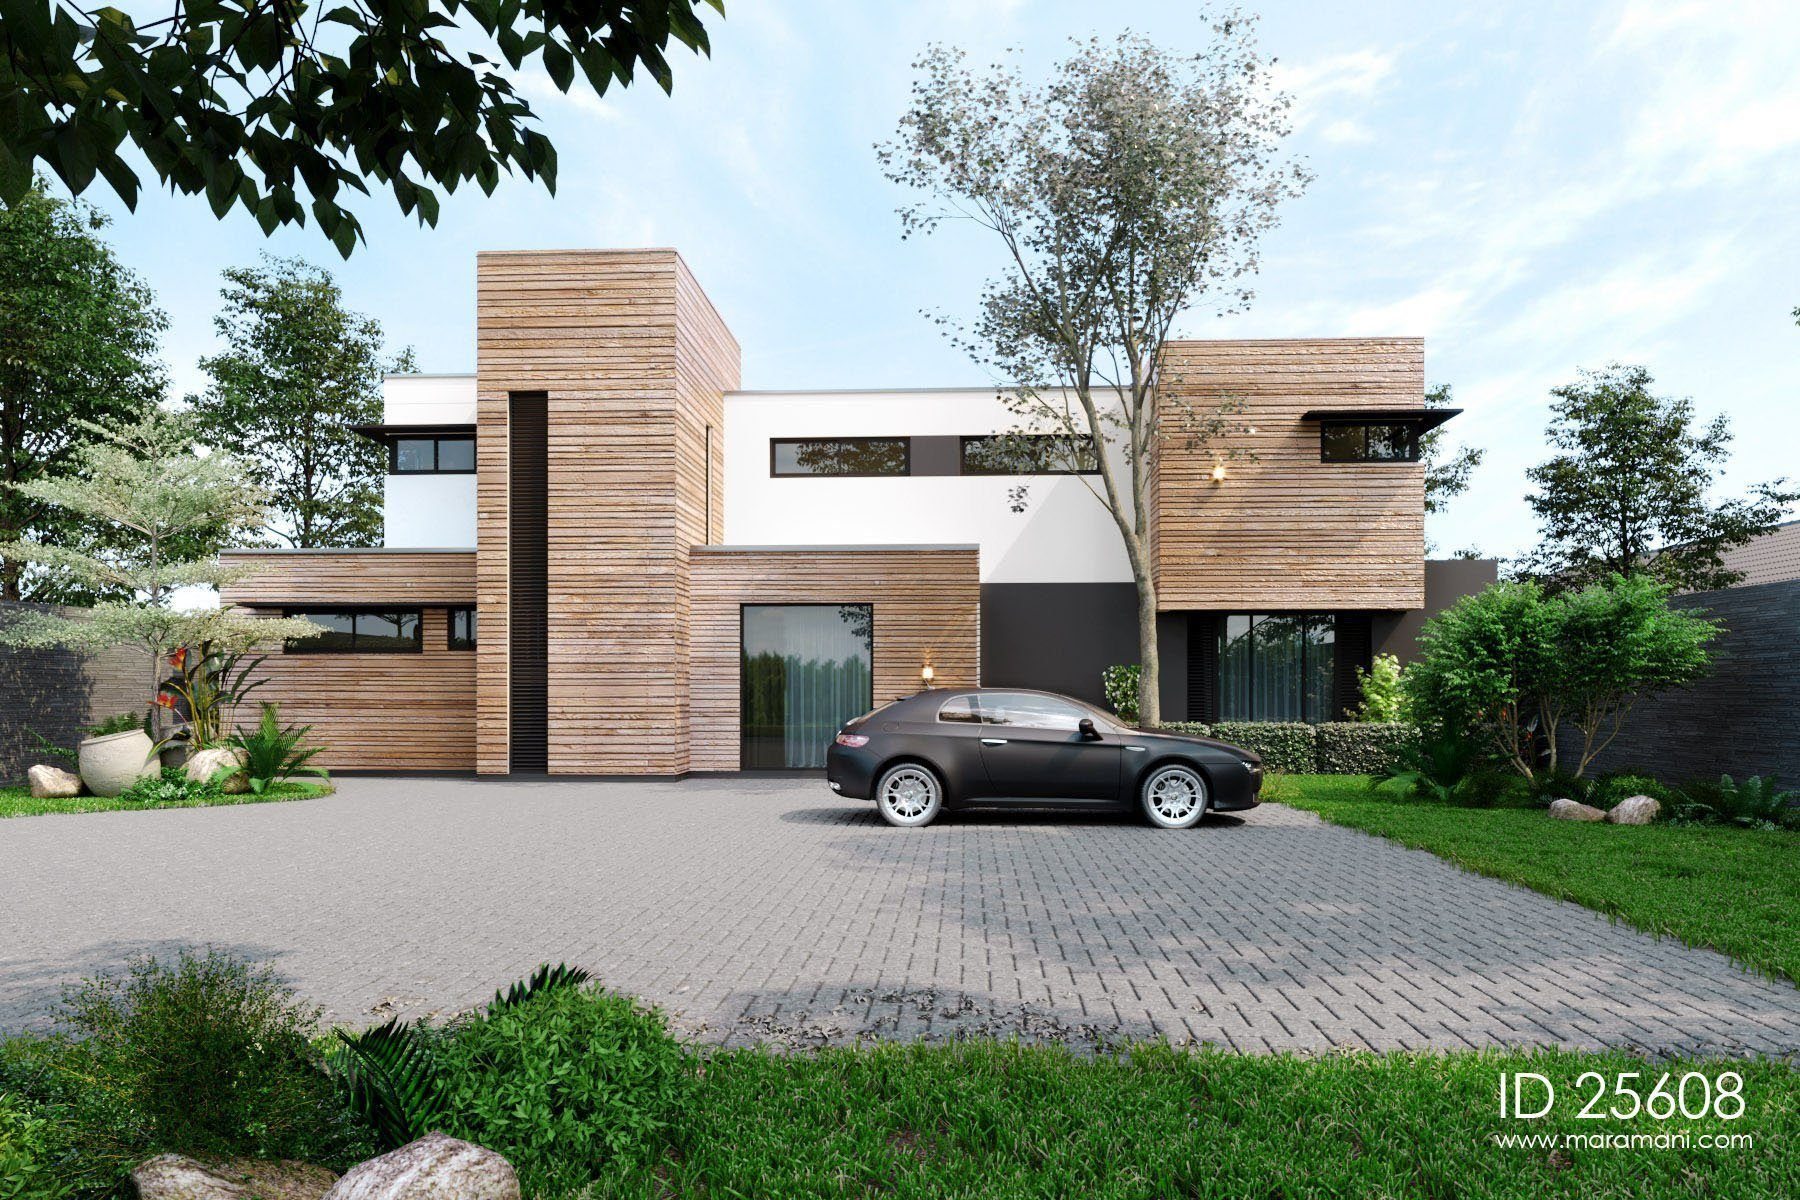 Timber Clad 5 Bedroom Contemporary House Id 25608 Maramani Com Modern House Plans Bedroom House Plans Luxury House Plans